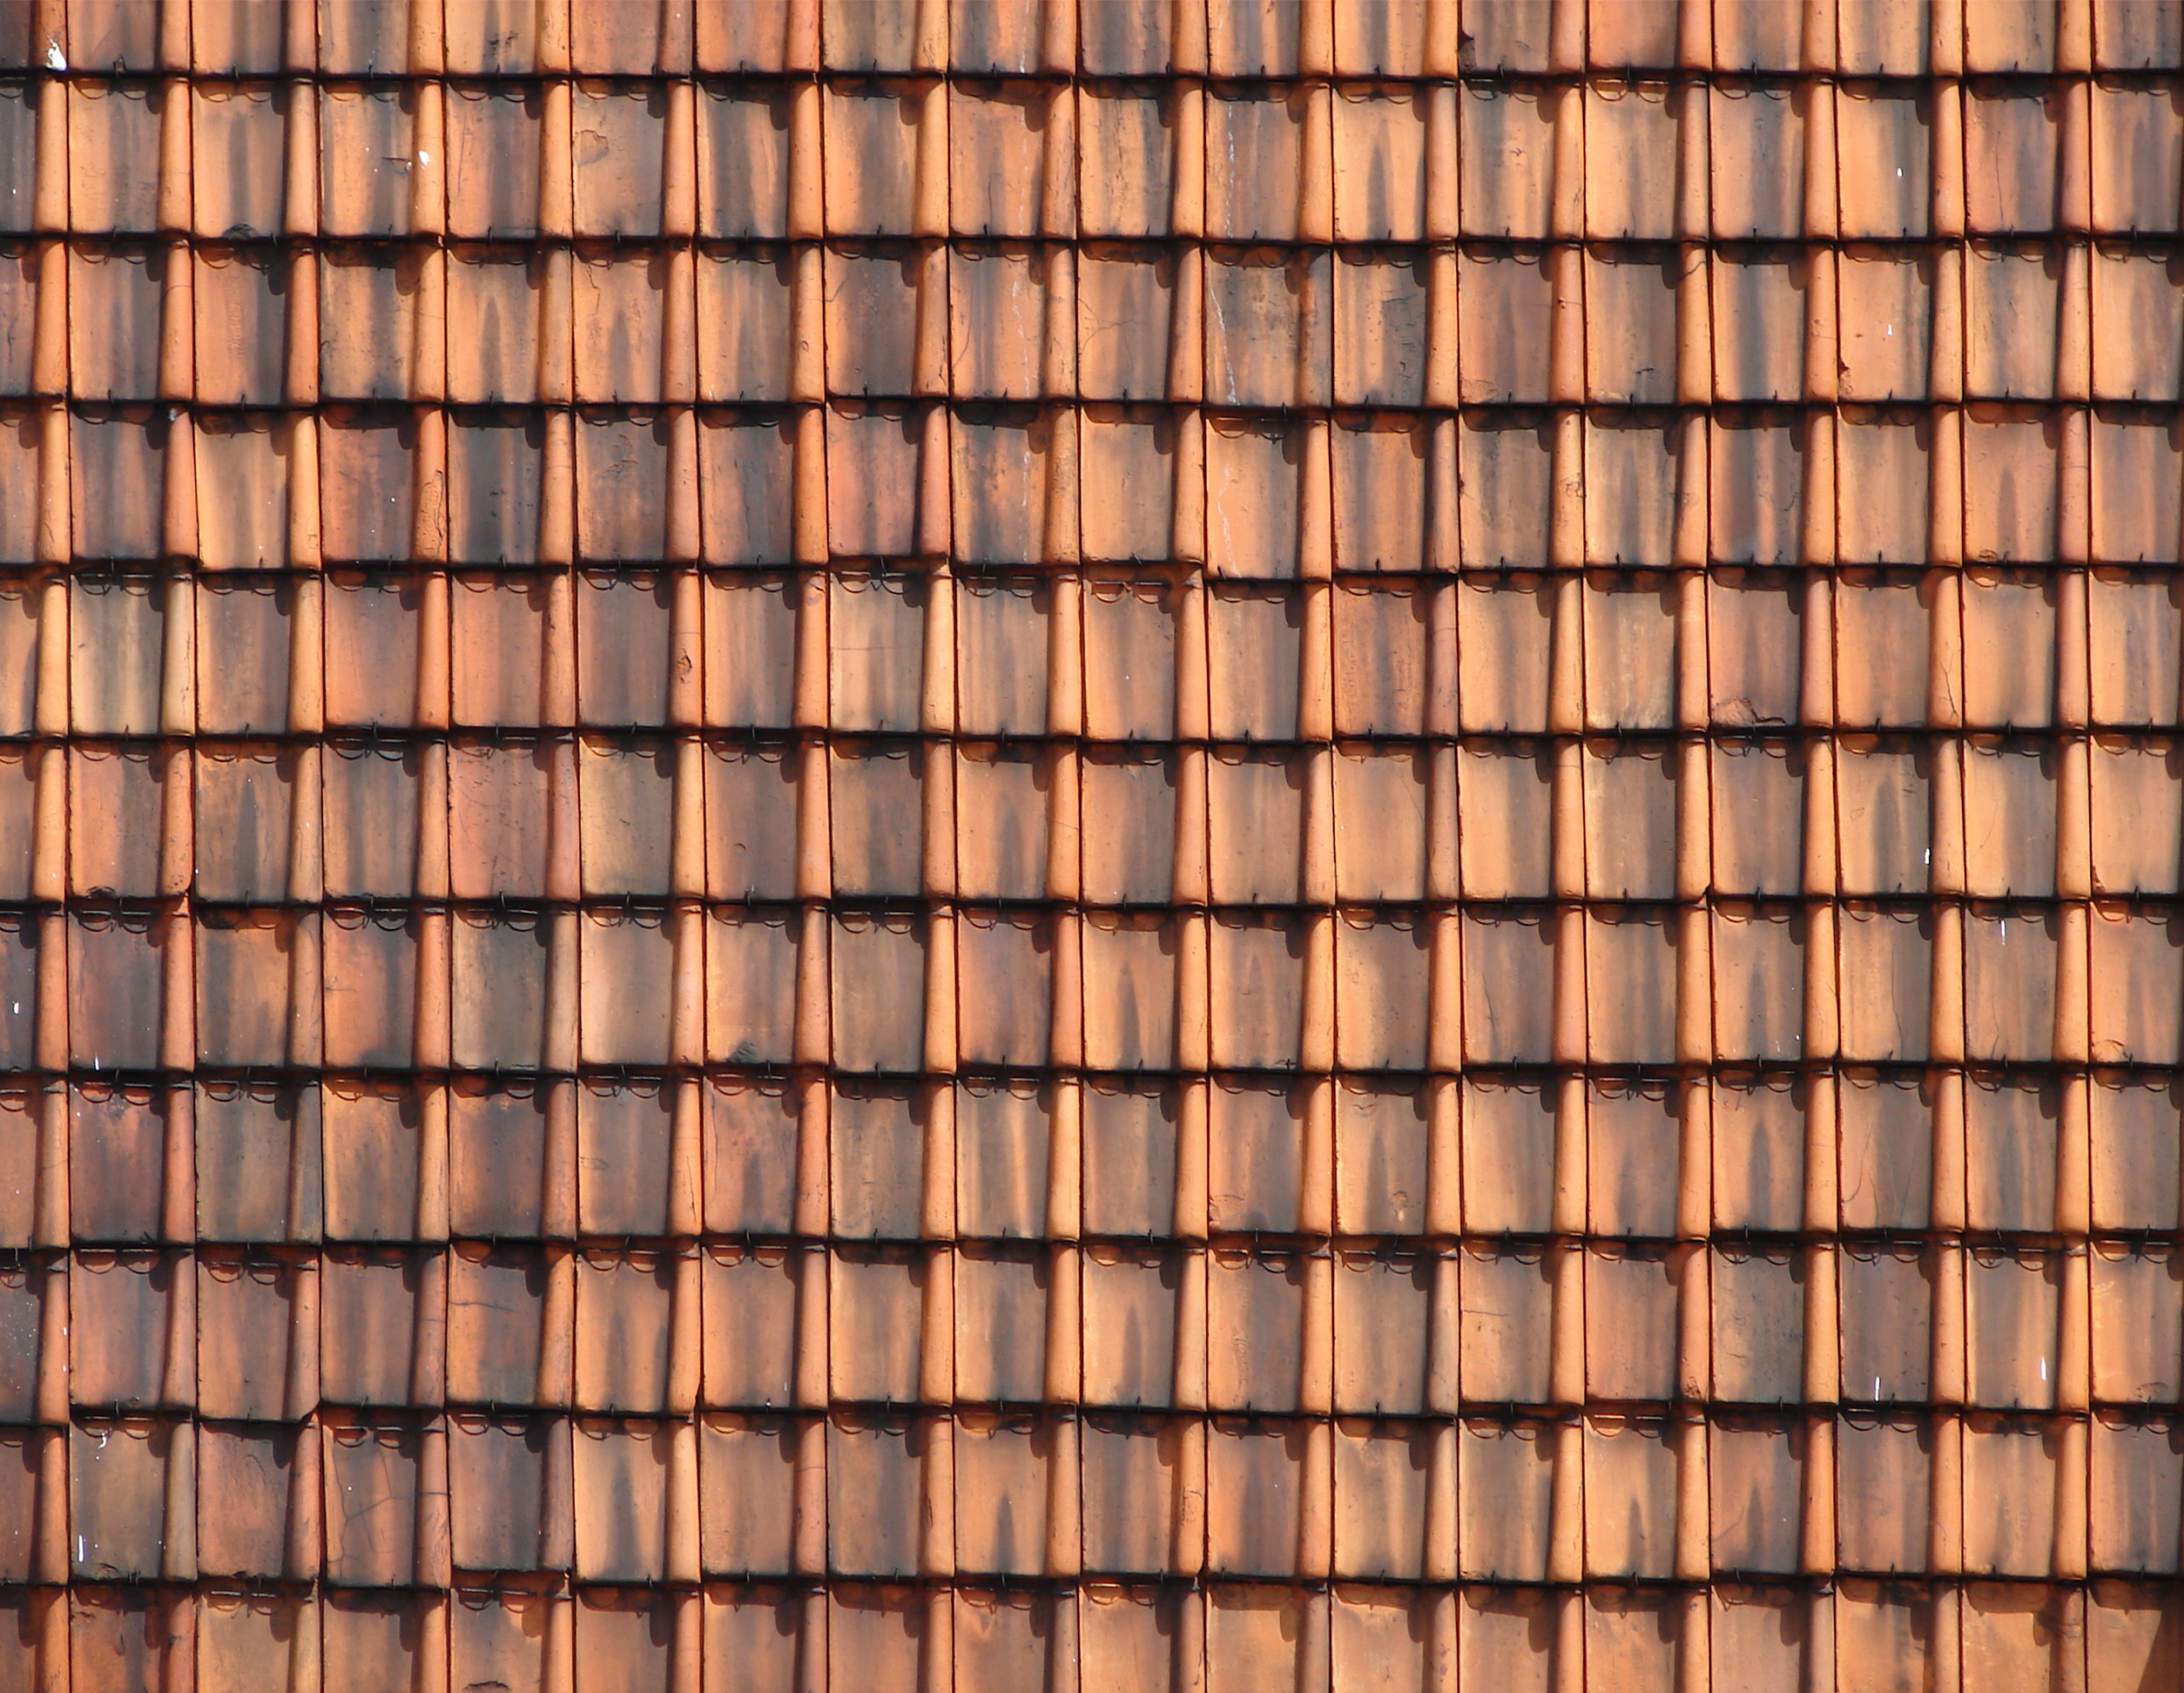 Home » Materials » Roof tile » Roof tile texture image background